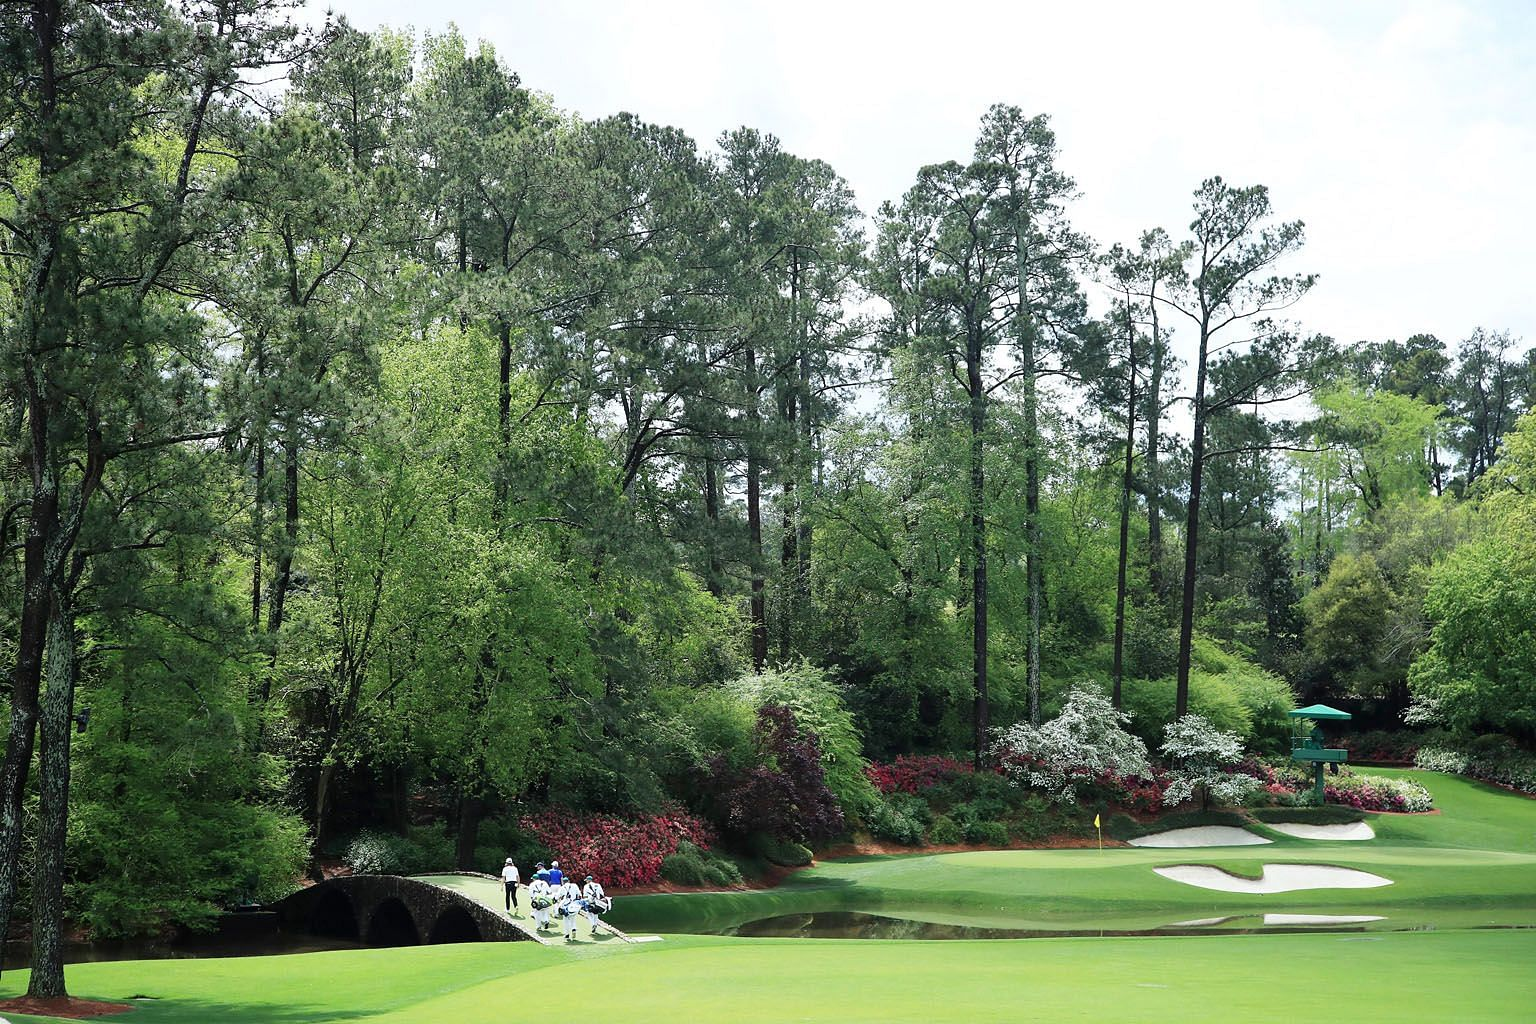 Hogan Bridge on the 12th hole, the fourth hardest, during a practice round before the Masters at Augusta National.